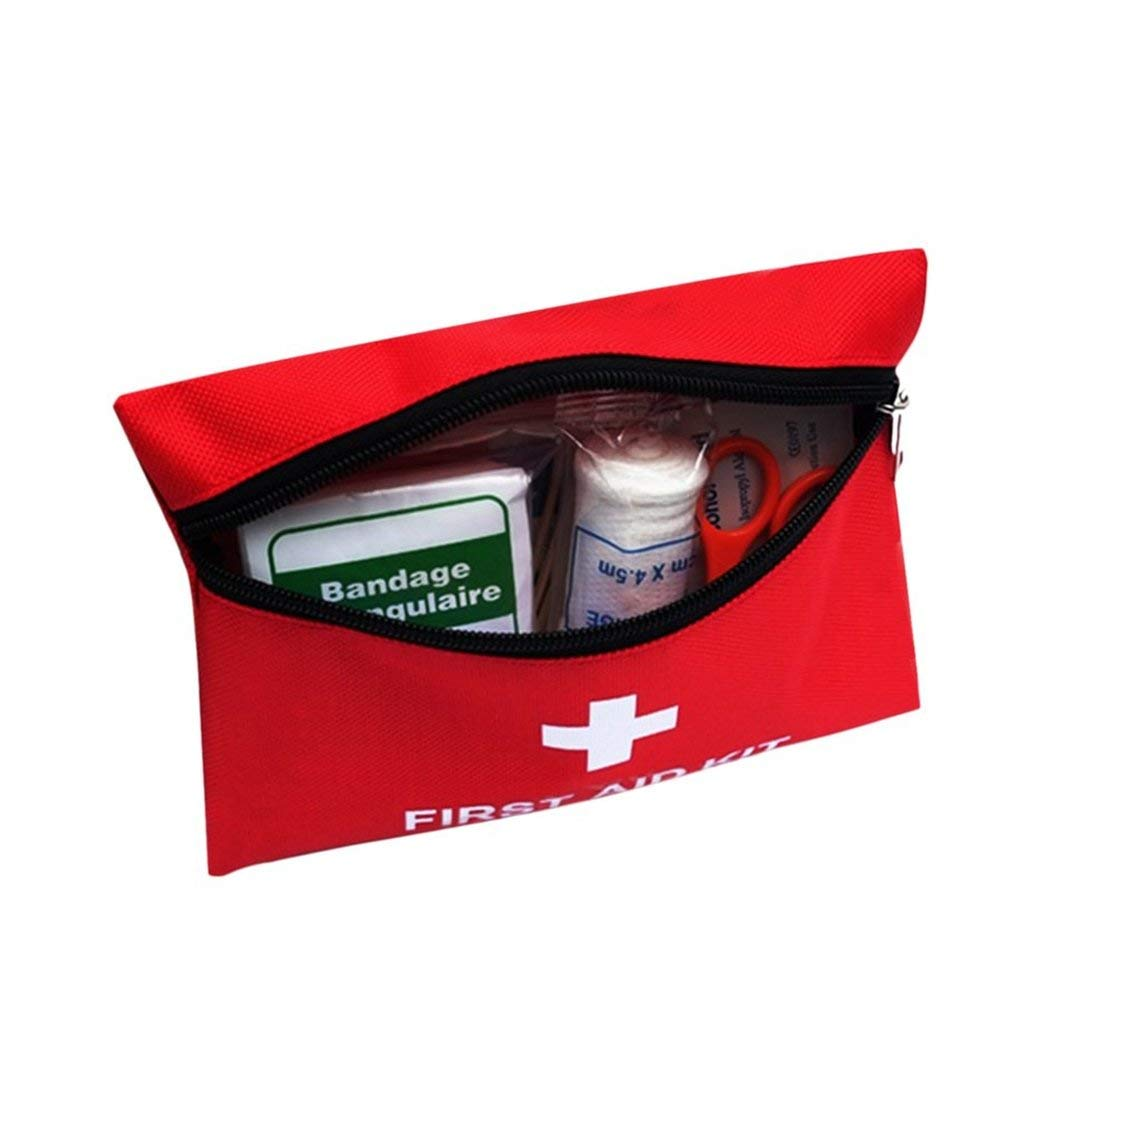 Fancysweety 13PCS//SET Emergency Survival Bag Outdoor Camping Travel Car First Aid Bag First Aid Medical Bag Survival Kit Set